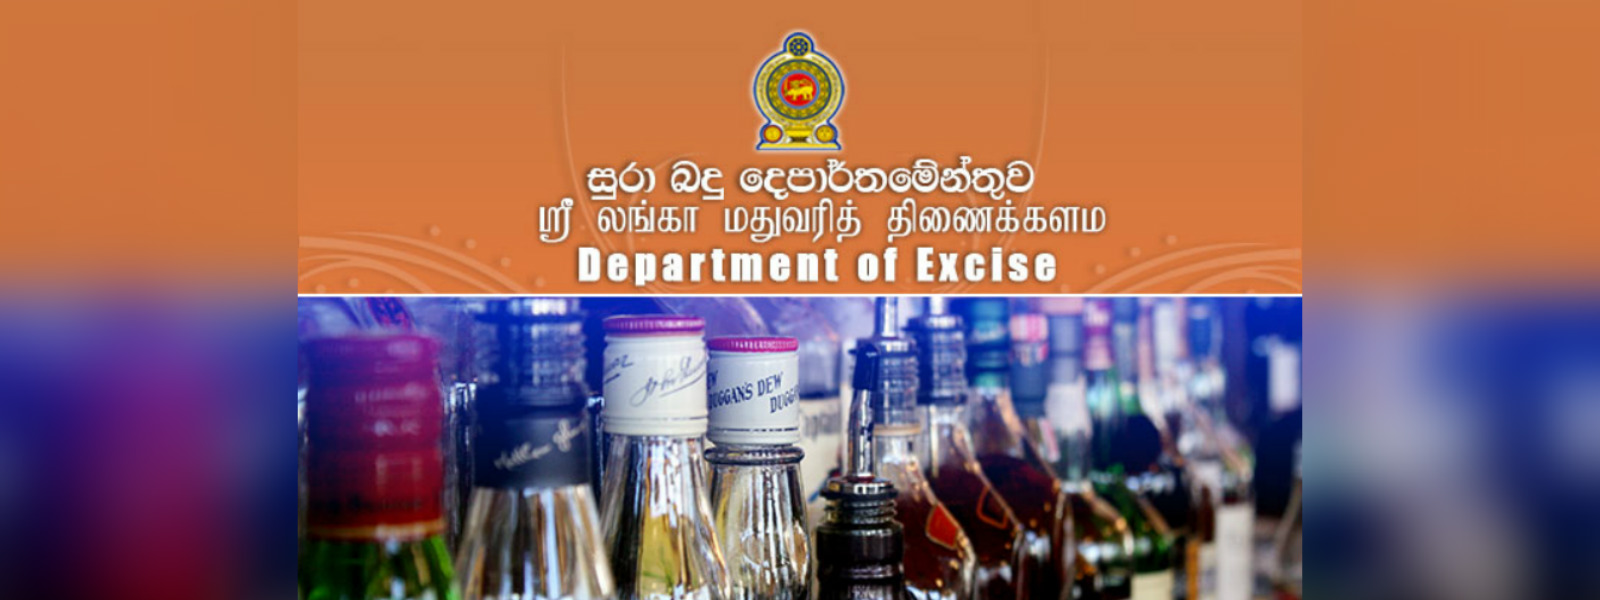 Over 42,000 arrested for violating excise laws